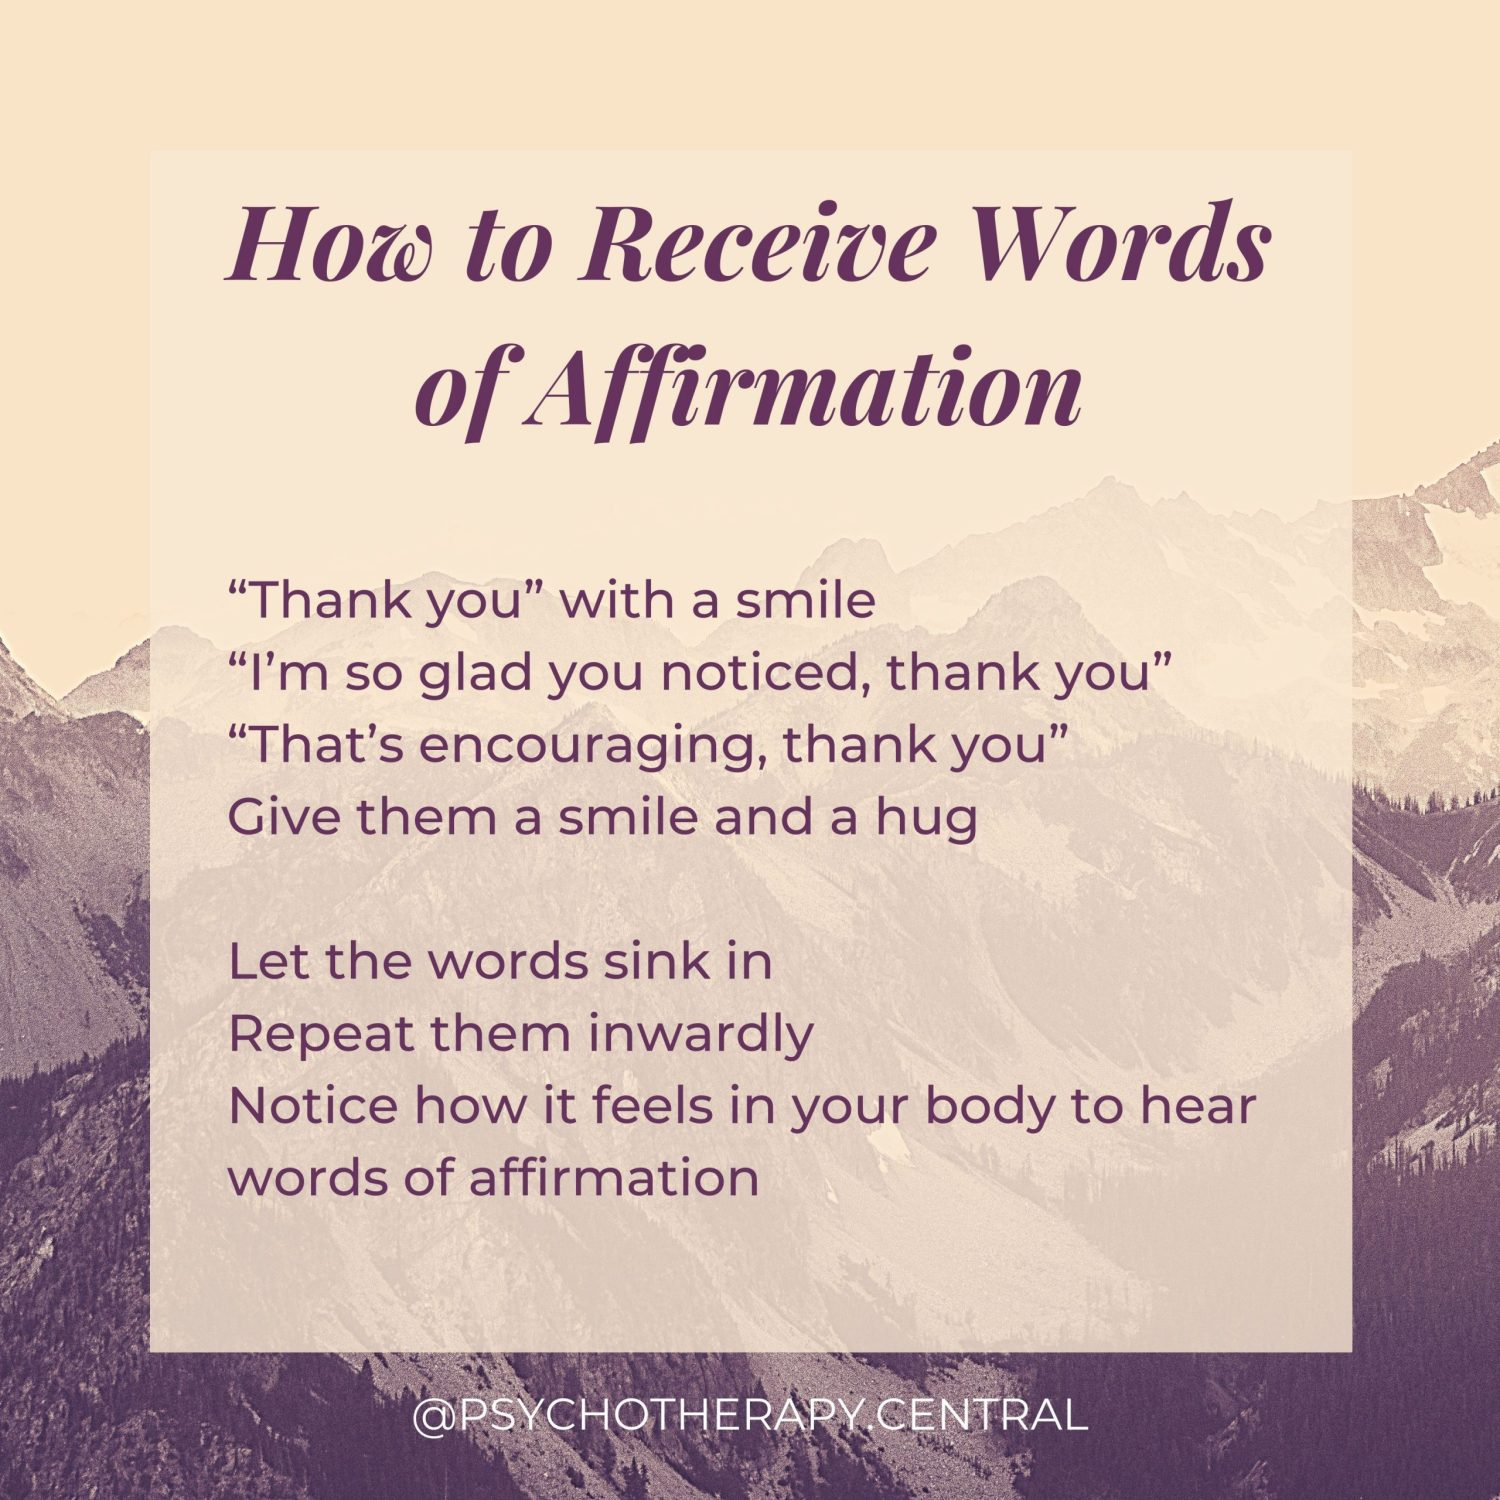 How to Receive Words of Affirmation